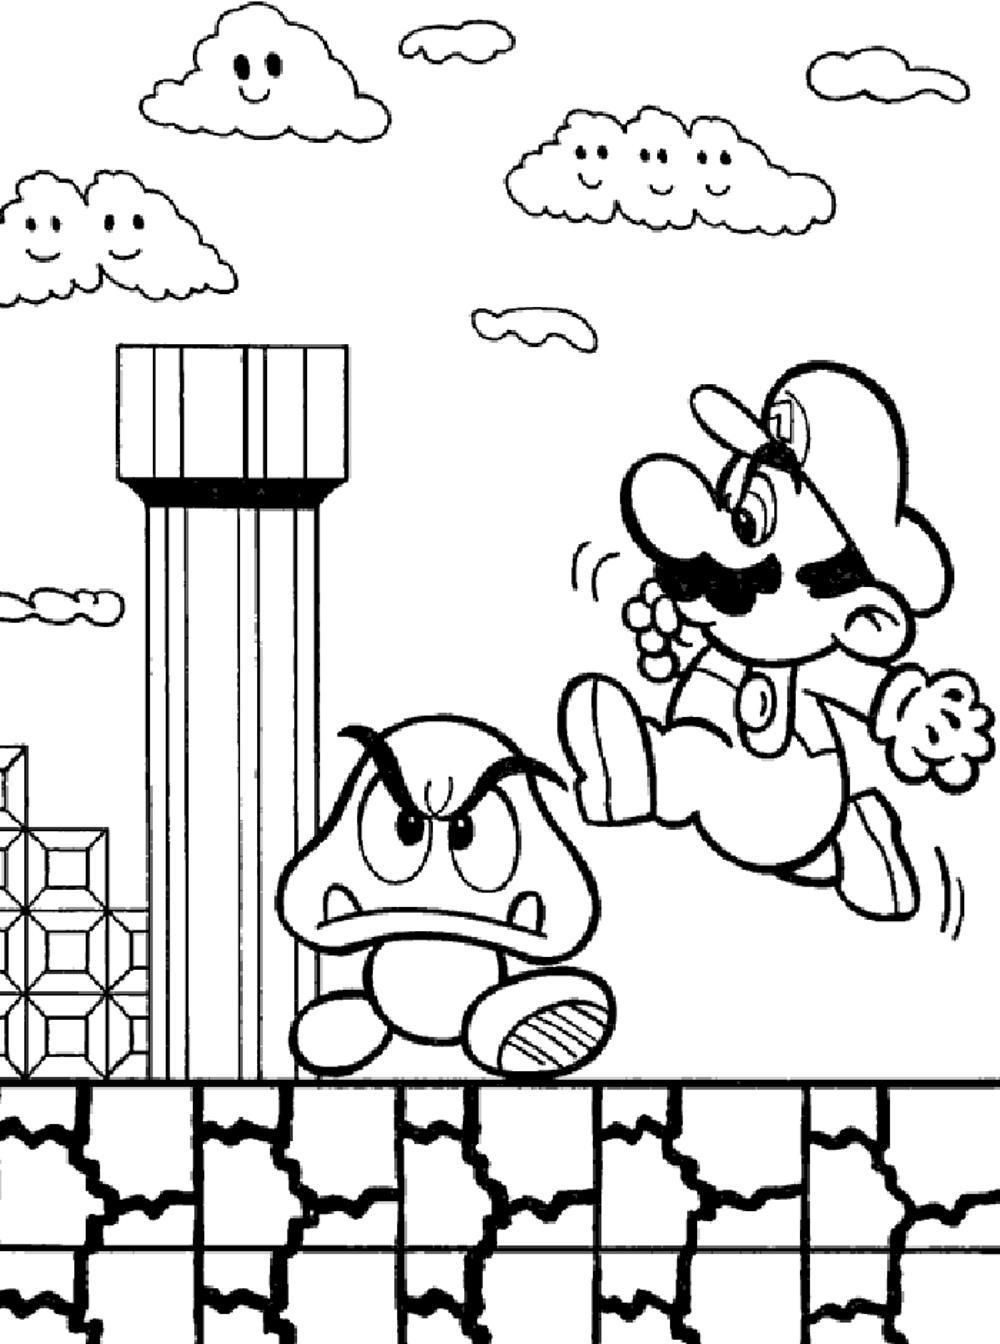 Mario Coloring Page1 1211—926 Coloring Pinterest Printable – Free Collection Of Super Mario Bros Coloring Pages to Print